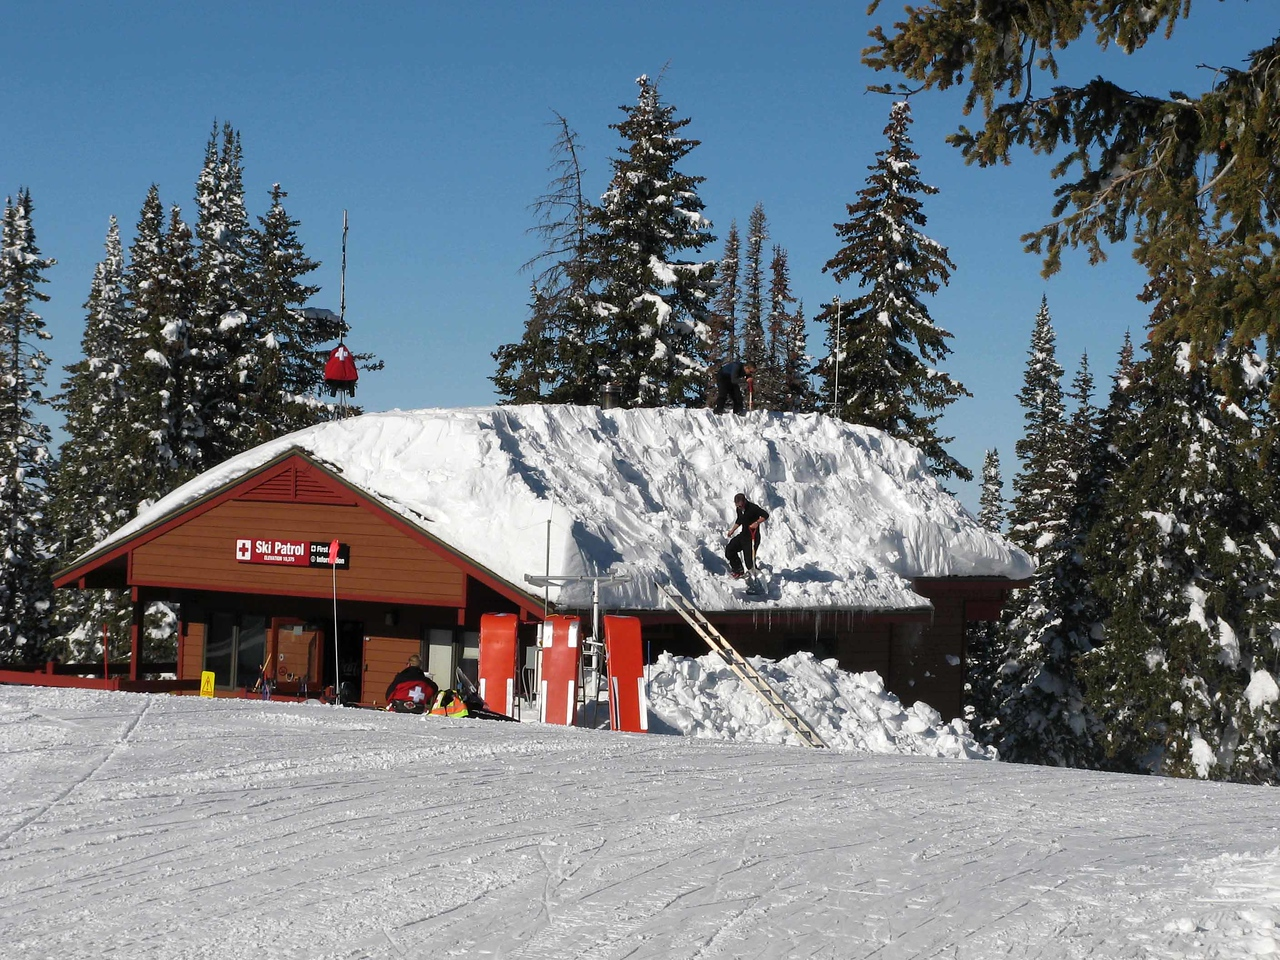 194 Ski Patrol clearing snow from their hut